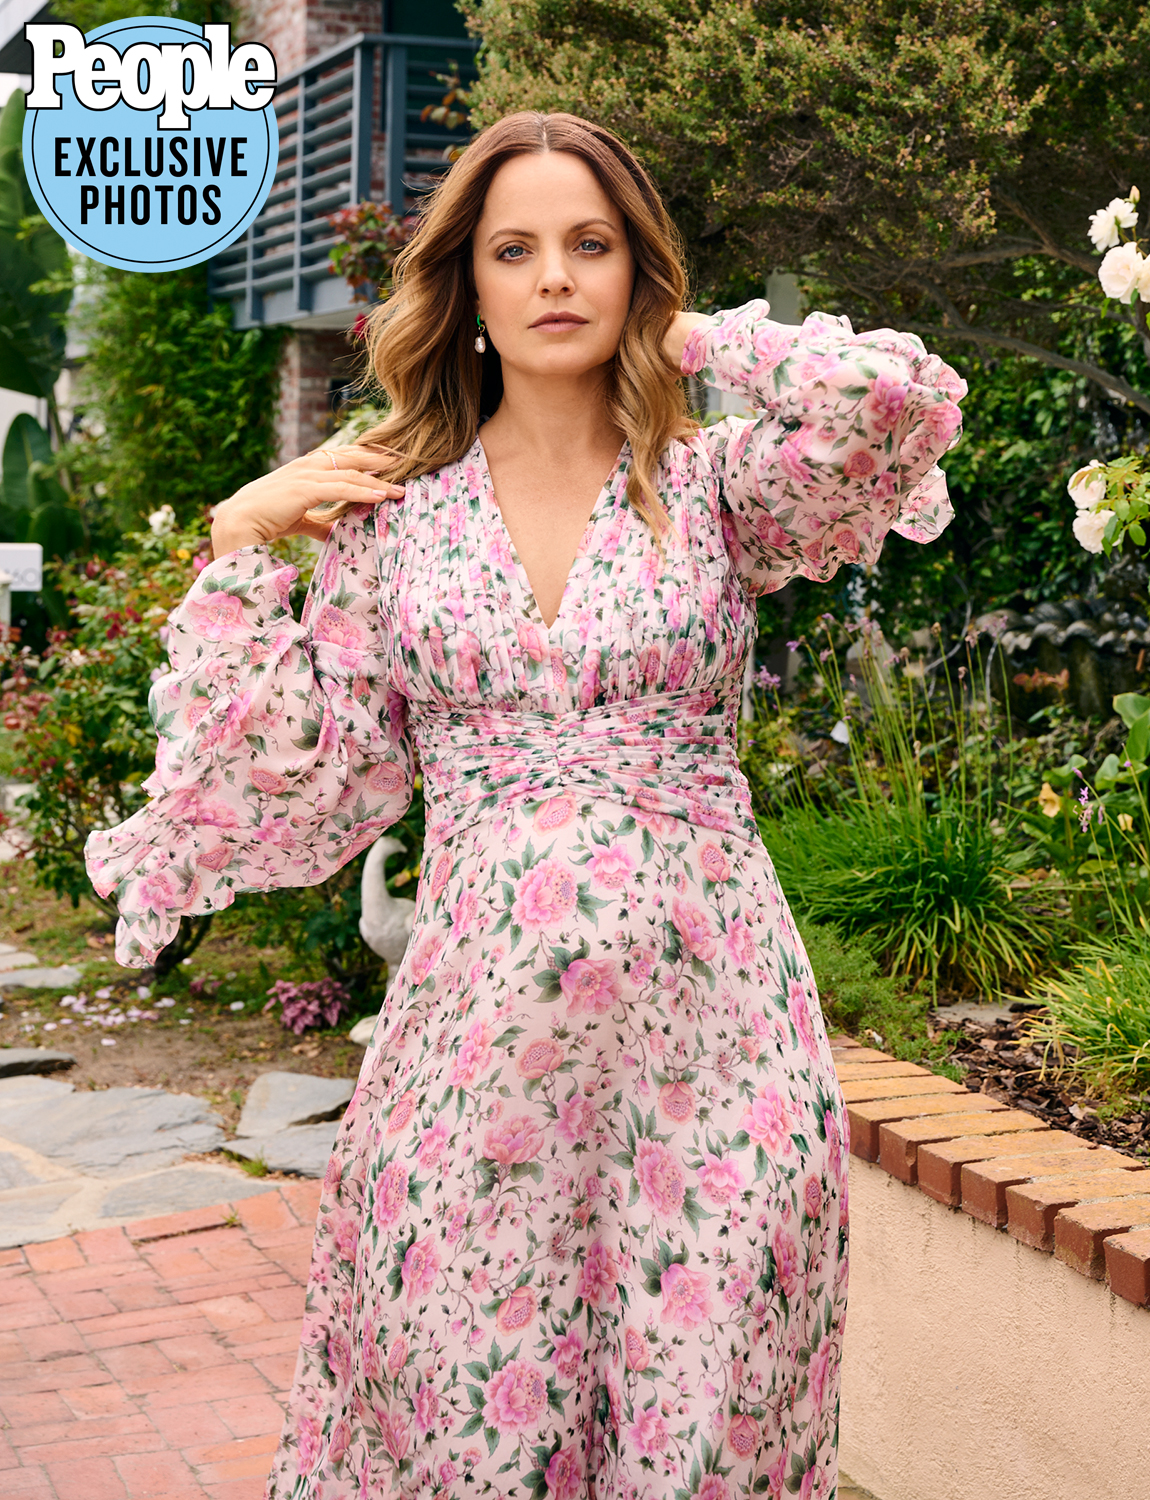 Mena Suvari photographed at her home in Manhattan Beach, CA, on July 8, 2021.